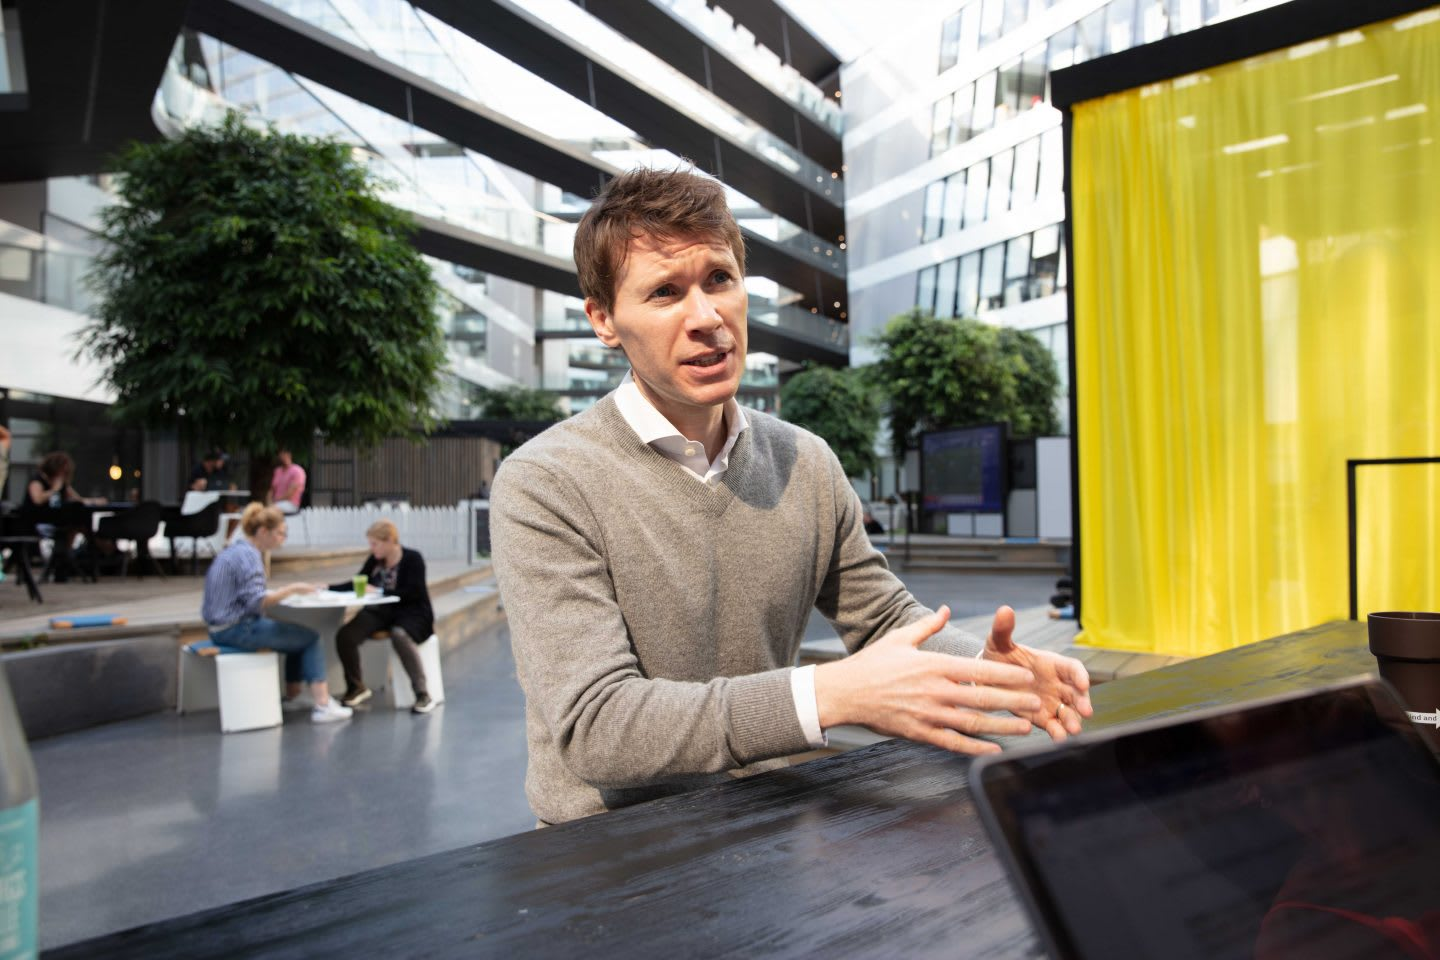 Man sitting at desk gesturing in work environment, Dr Lee Jones, Aktiv against cancer, cancer research, oncology exercise, physical activity, adidas Headquarter, Herzogenaurach, adidas, GamePlan A